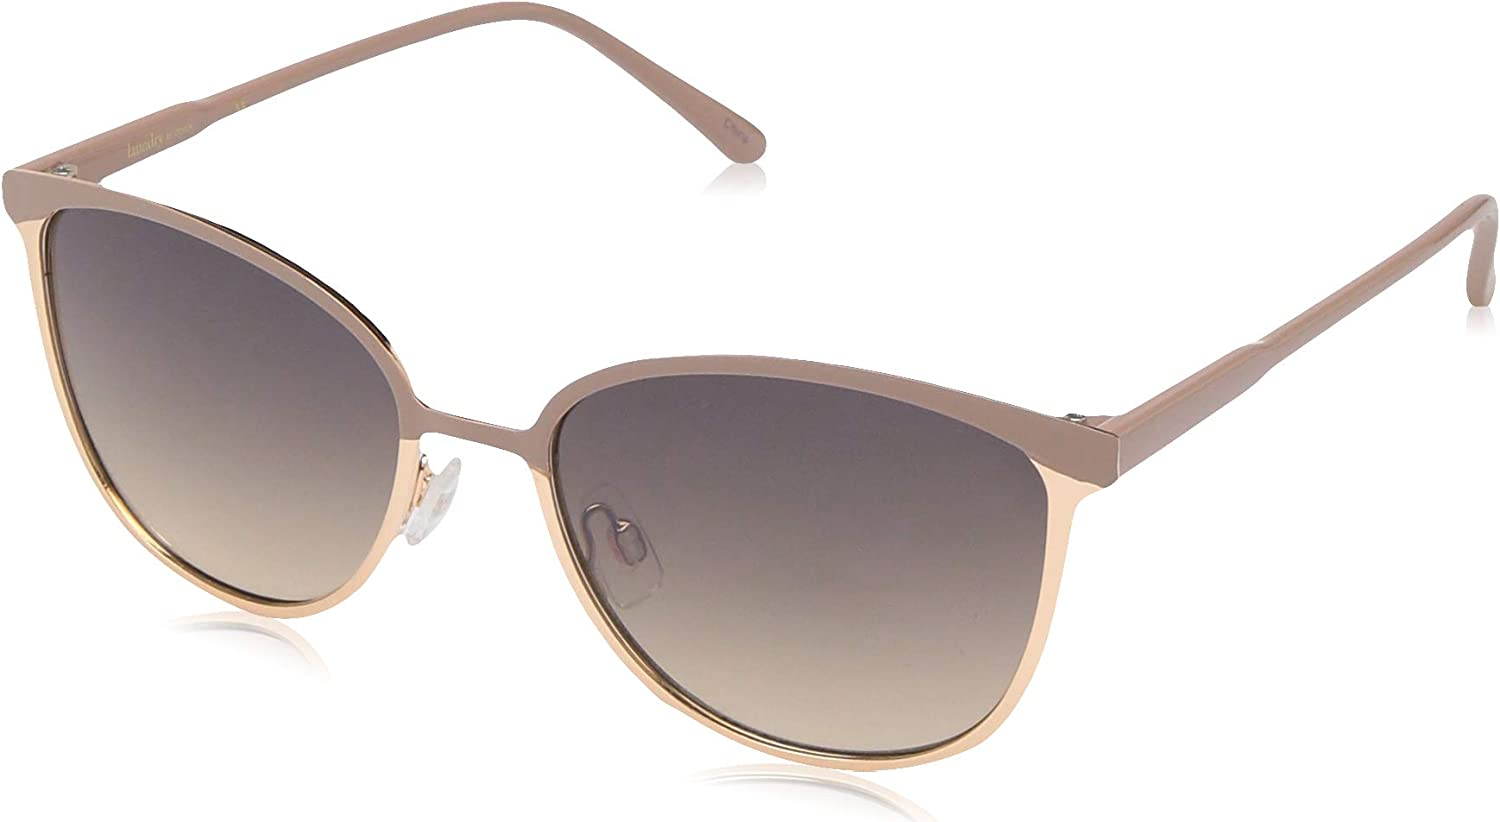 Laundry by Design Women's LD244 Rectangular Sunglasses with 100% UV Protection, 55 mm